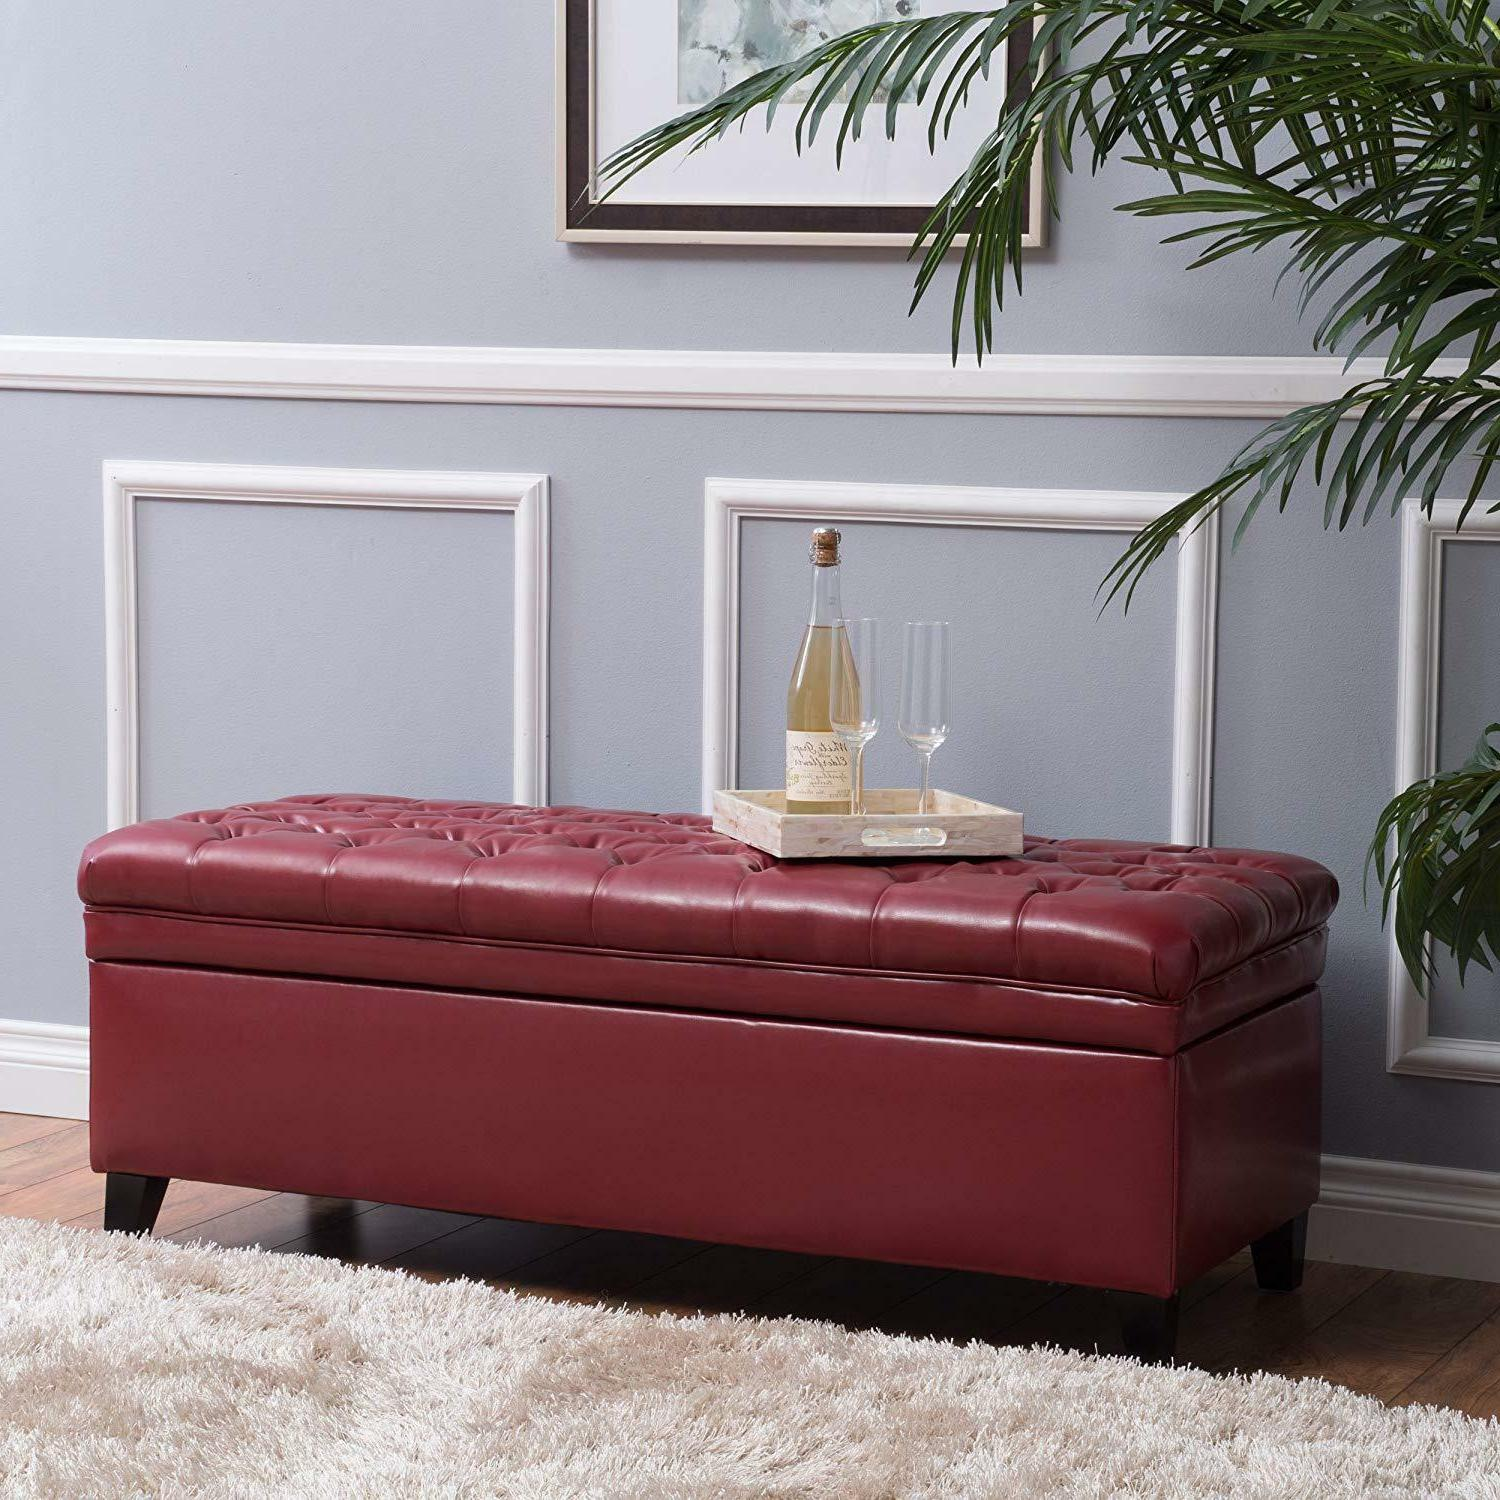 Furniture tufted fabric storage ottoman bench for living roo